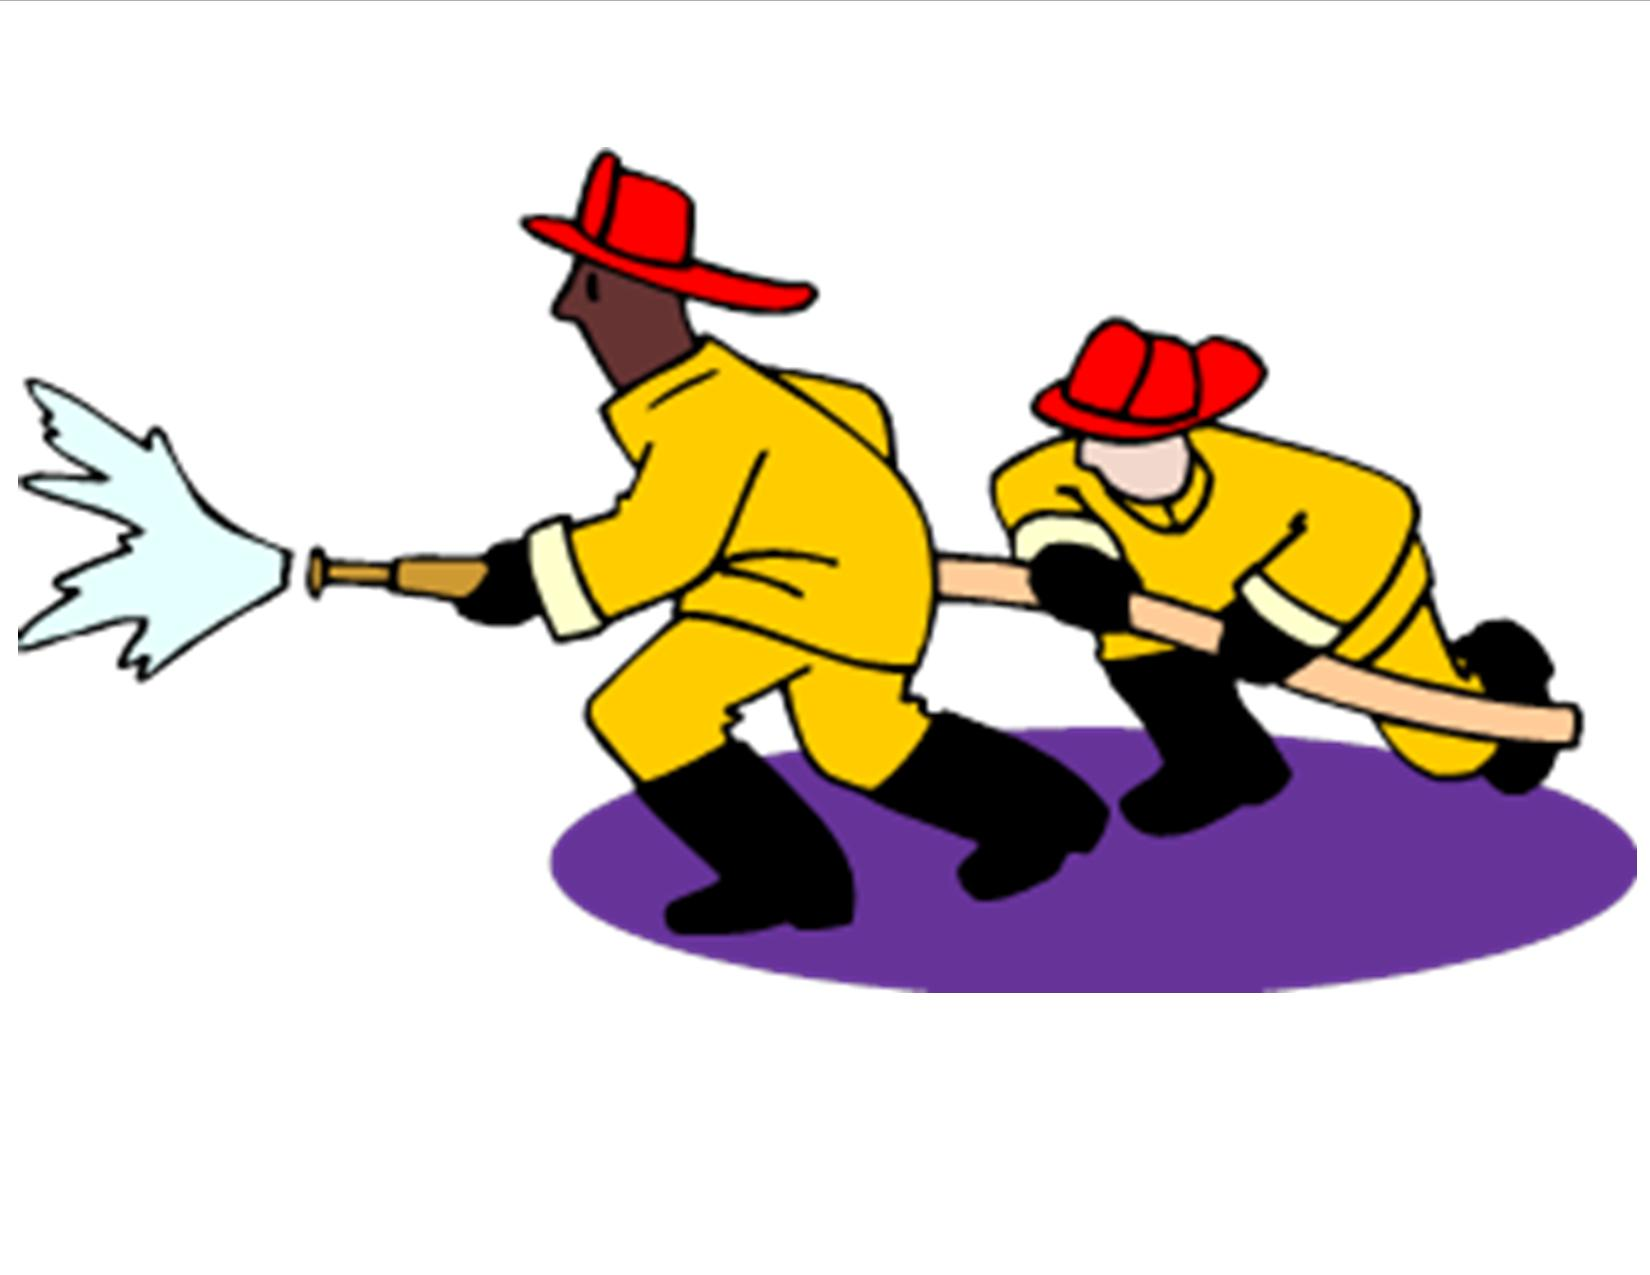 Firefighter Clip Art-Firefighter Clip Art-12